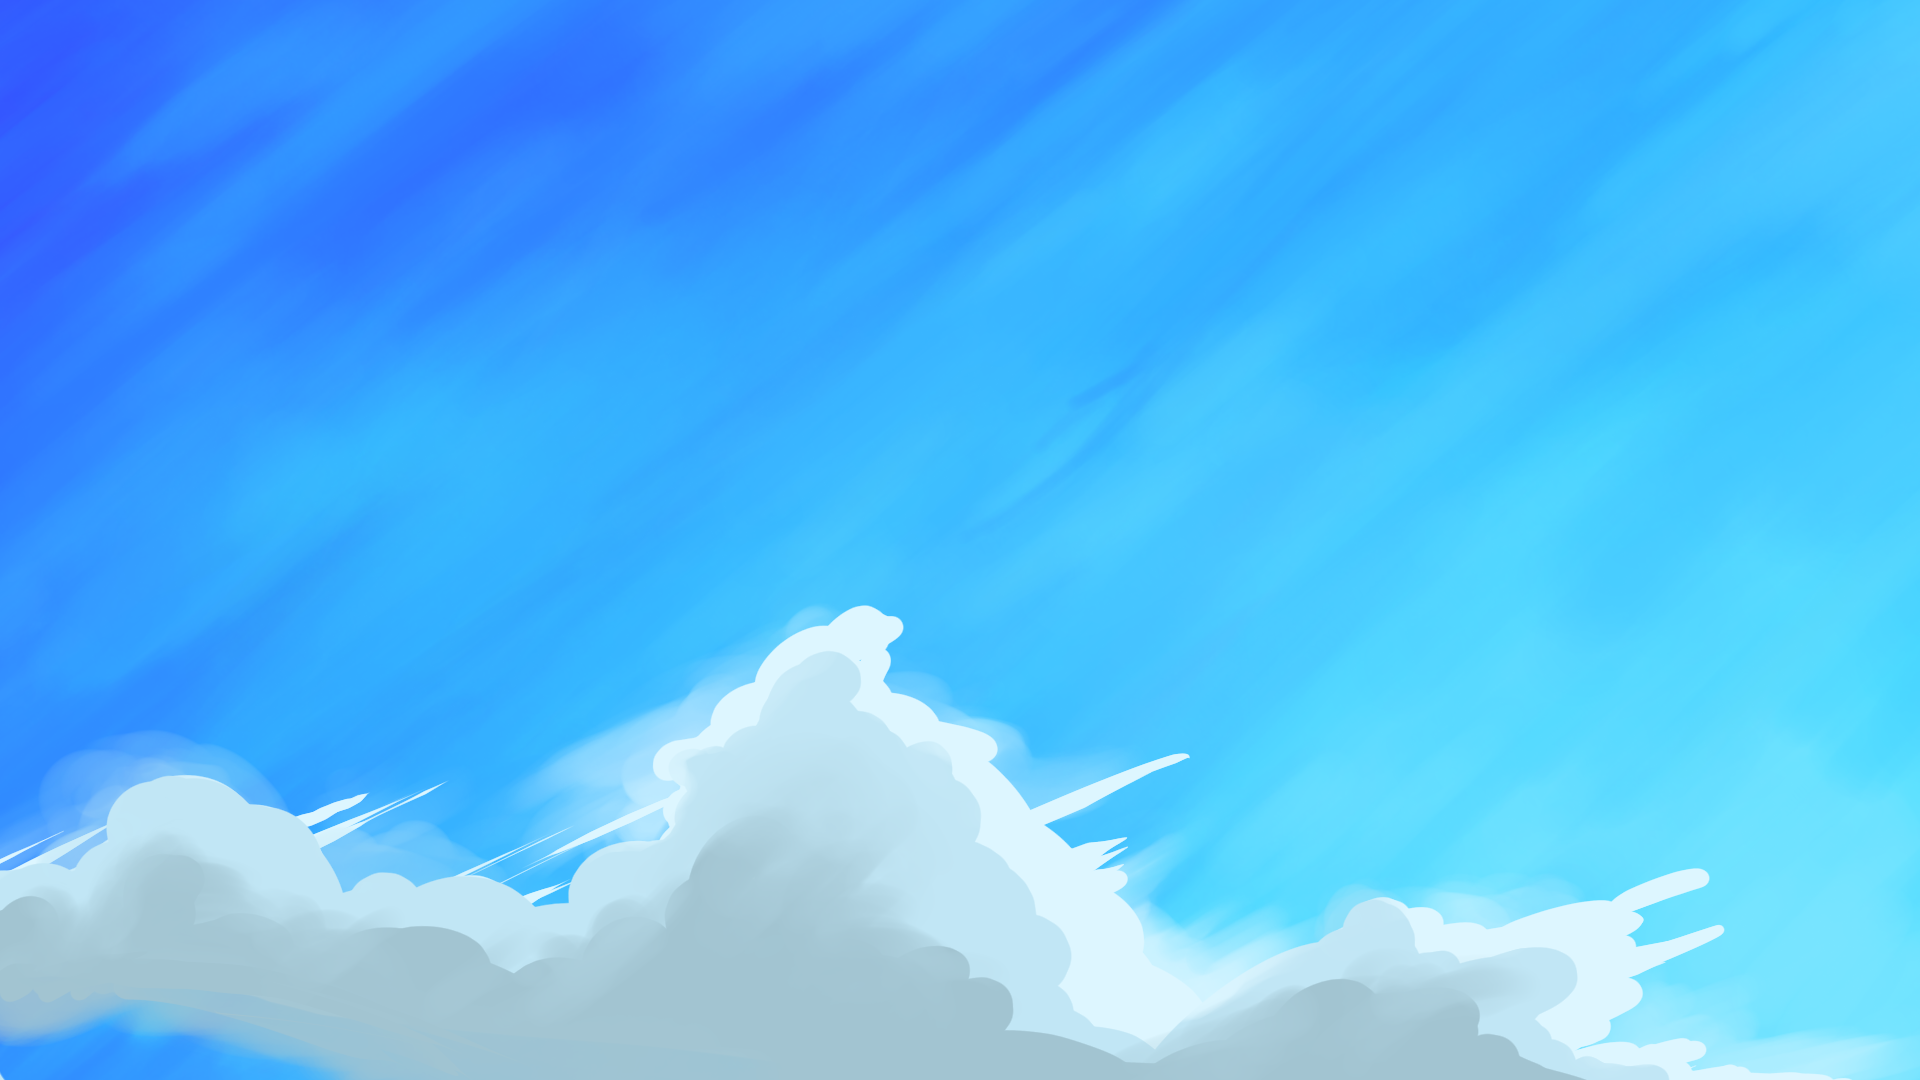 skybackground